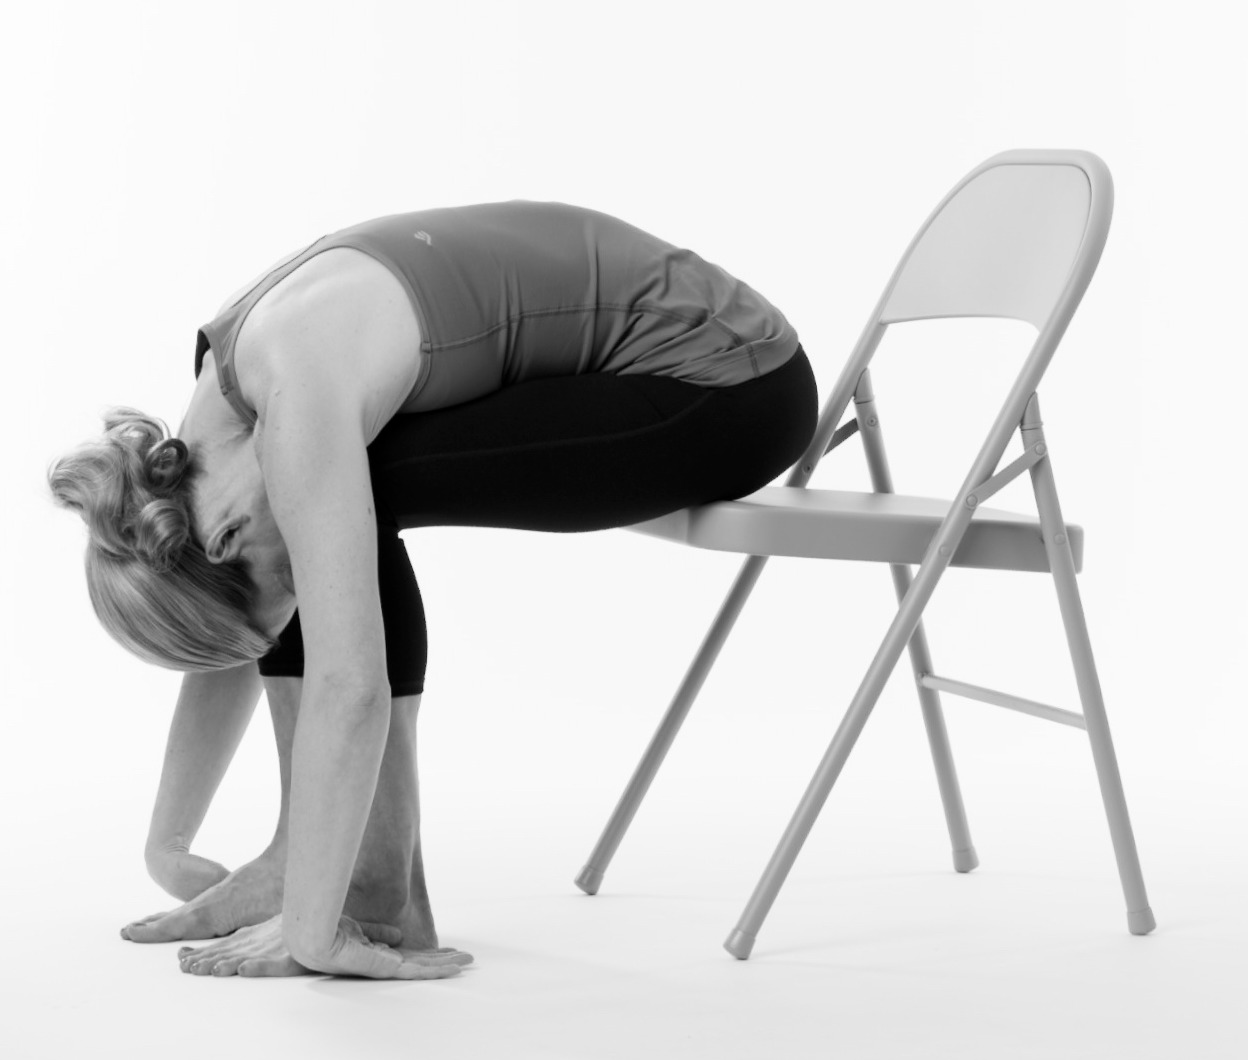 hanging yoga chair throne chairs for weddings stuck in your seat 4 inventive moves to